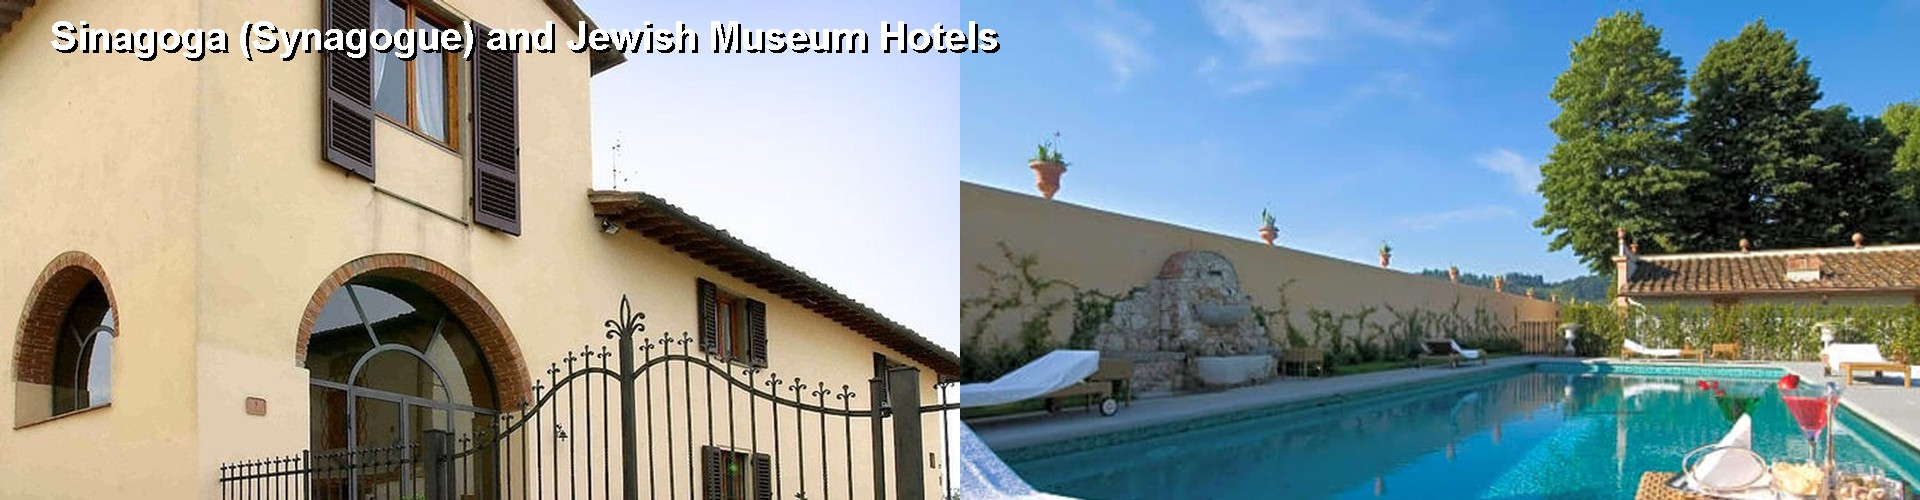 Elegant Best Hotels Near Sinagoga Synagogue And Jewish Museum With Shuls